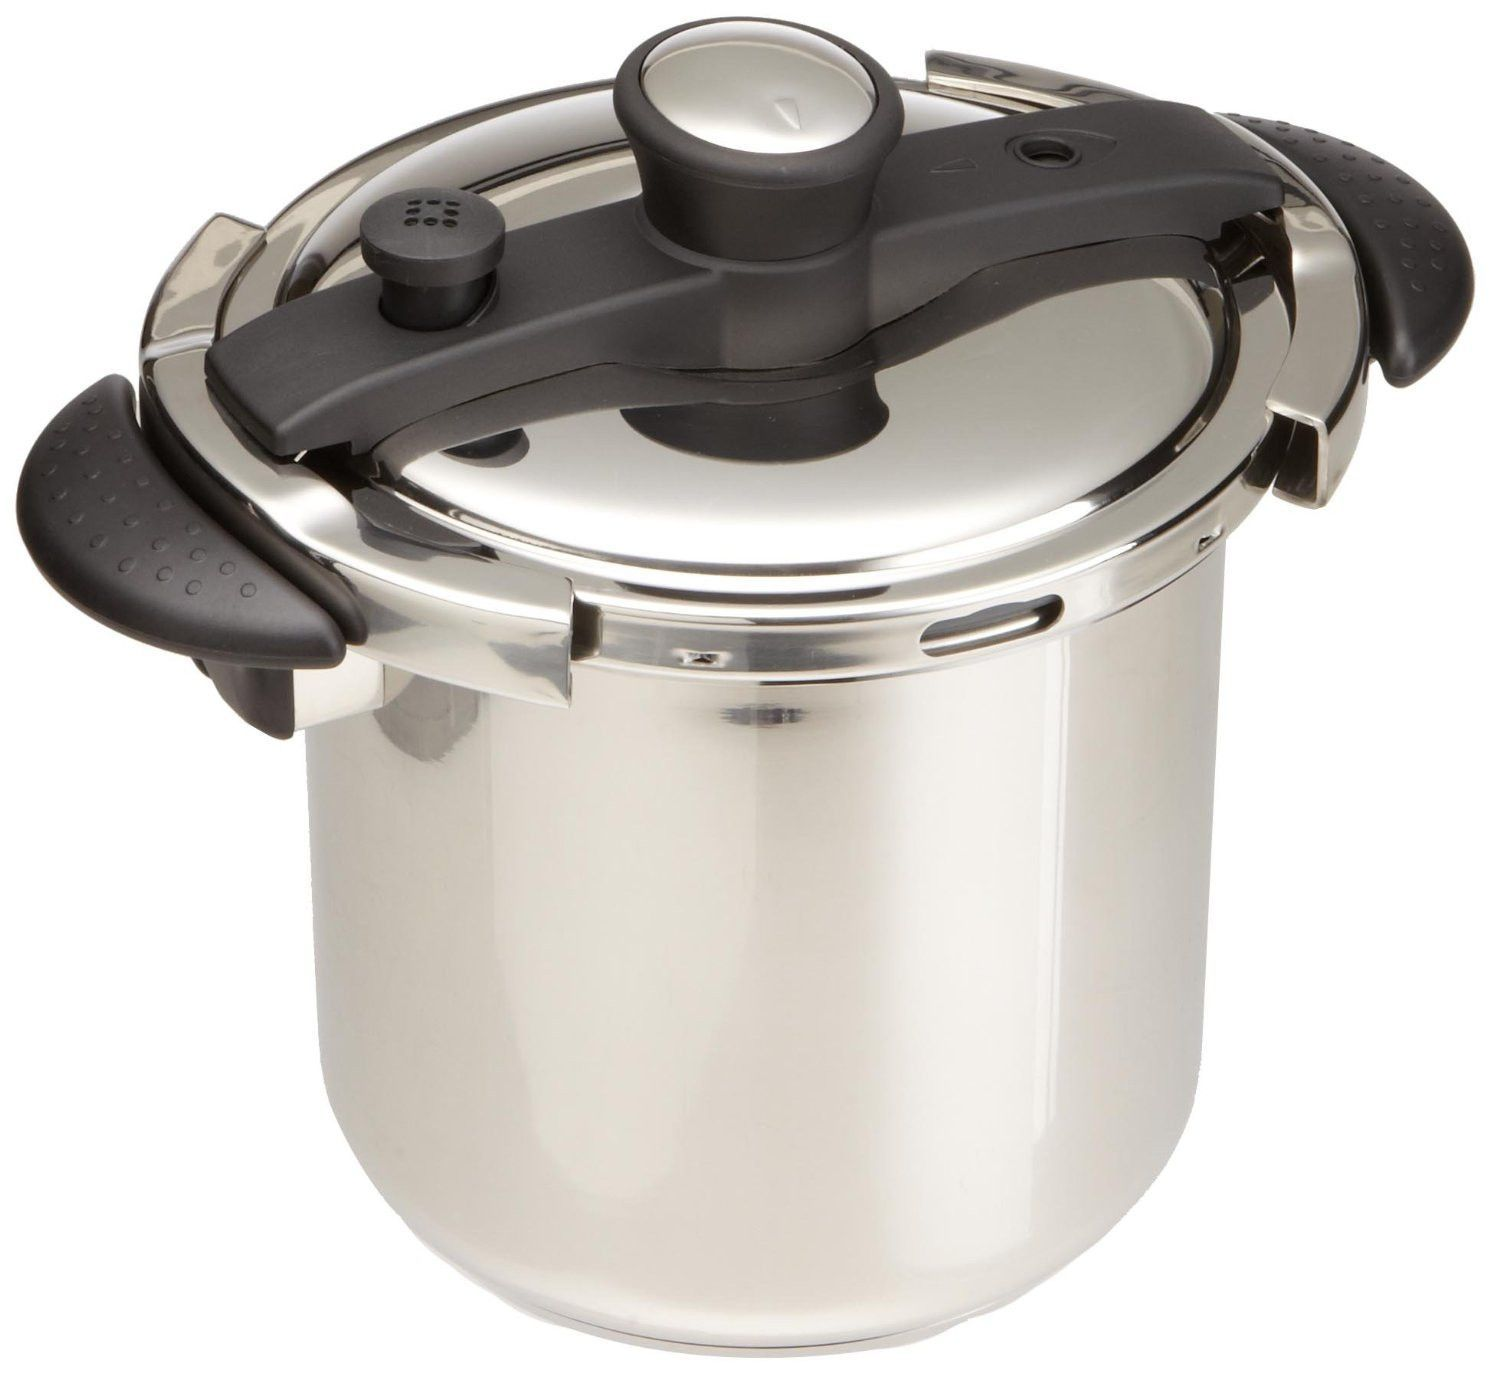 Fagor duo 8 quart pressure cooker - Concord 8 Quart Stainless Steel Pressure Cooker With Try Ply Bottom Spc22 8